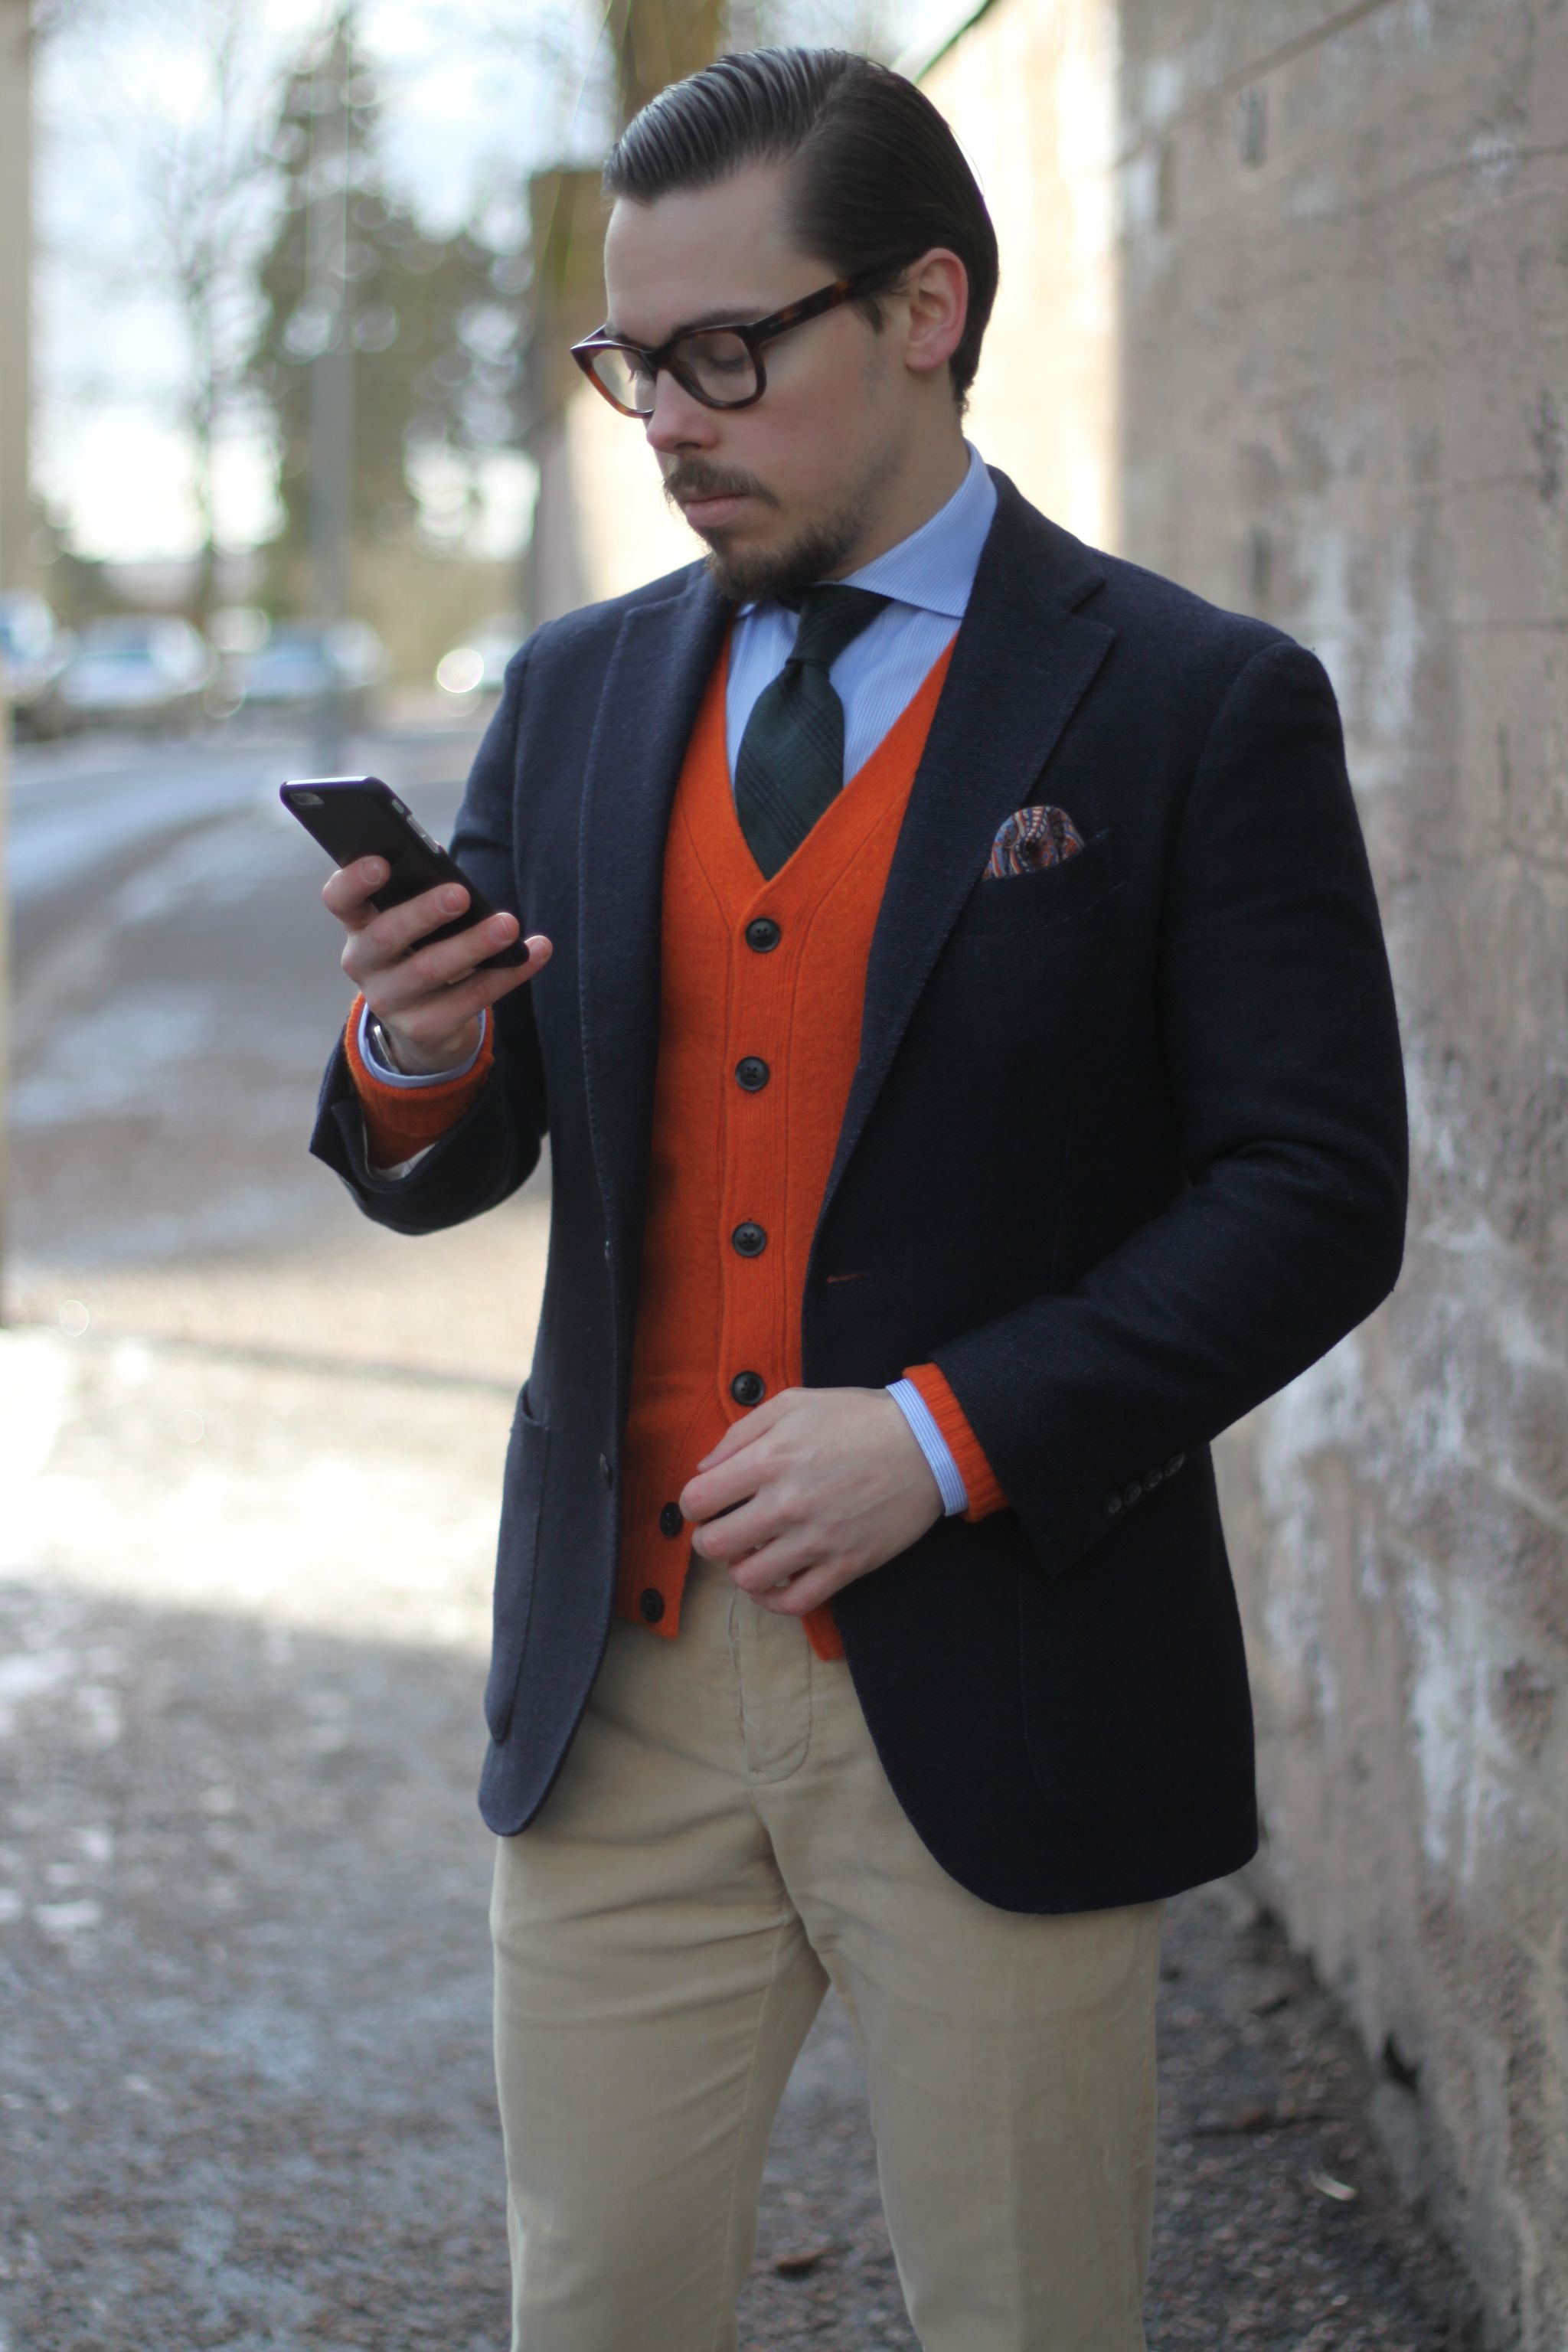 Cardigan with sport coat - how to layer with cardigan and sport coat